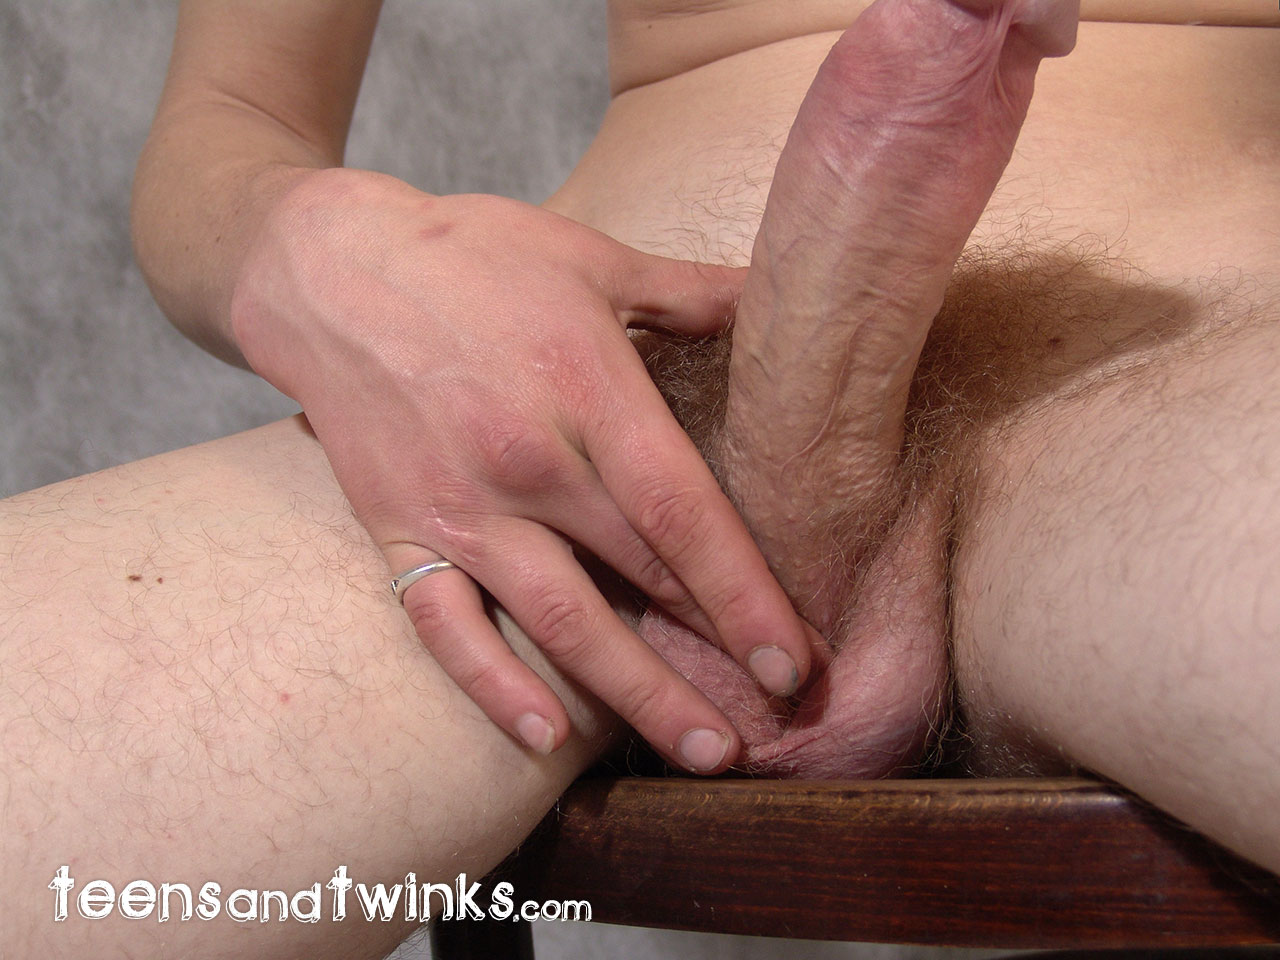 Gay boy masturbating big sex dungeon 2